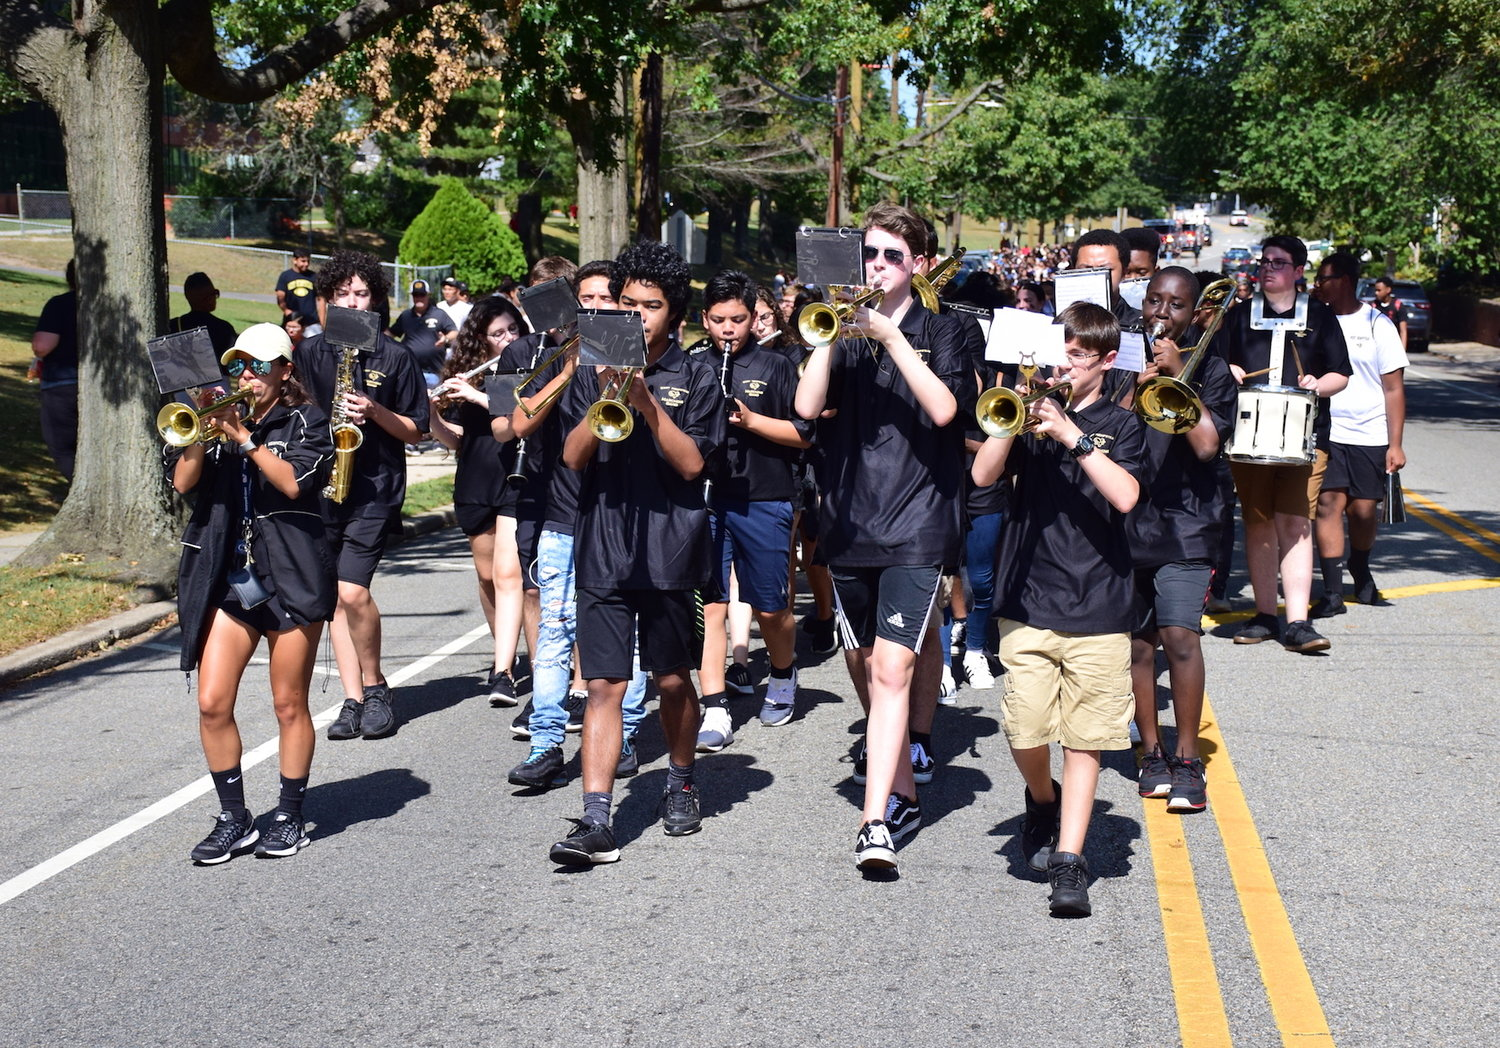 The high school marching band paraded down Nassau Boulevard.